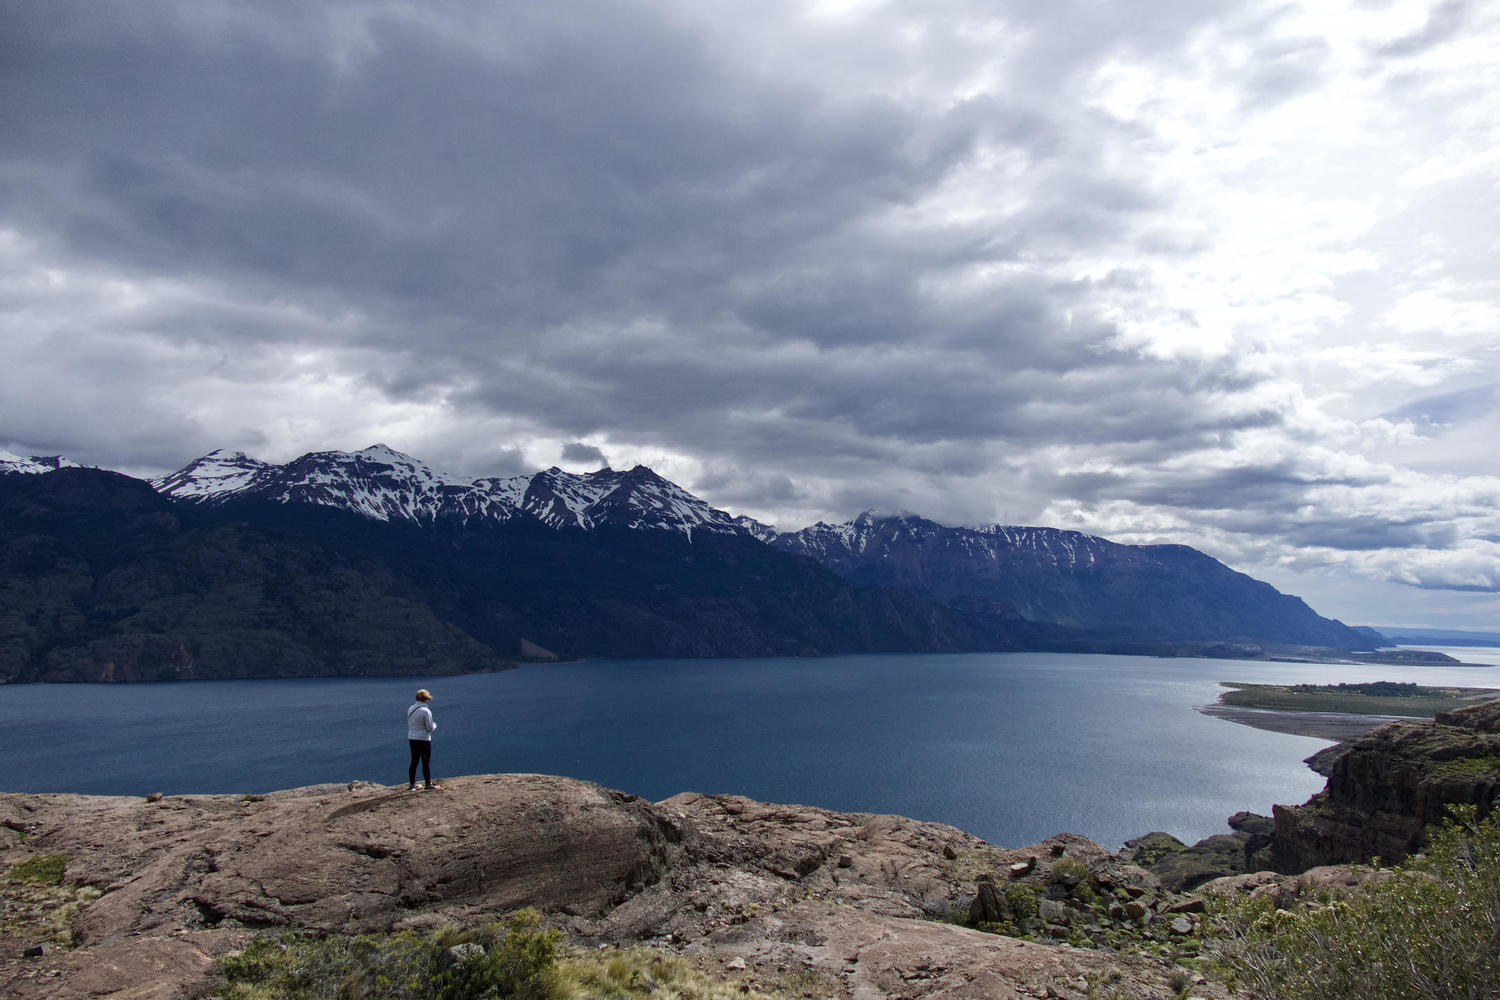 Standing on the southern shores of Lago General Carrera